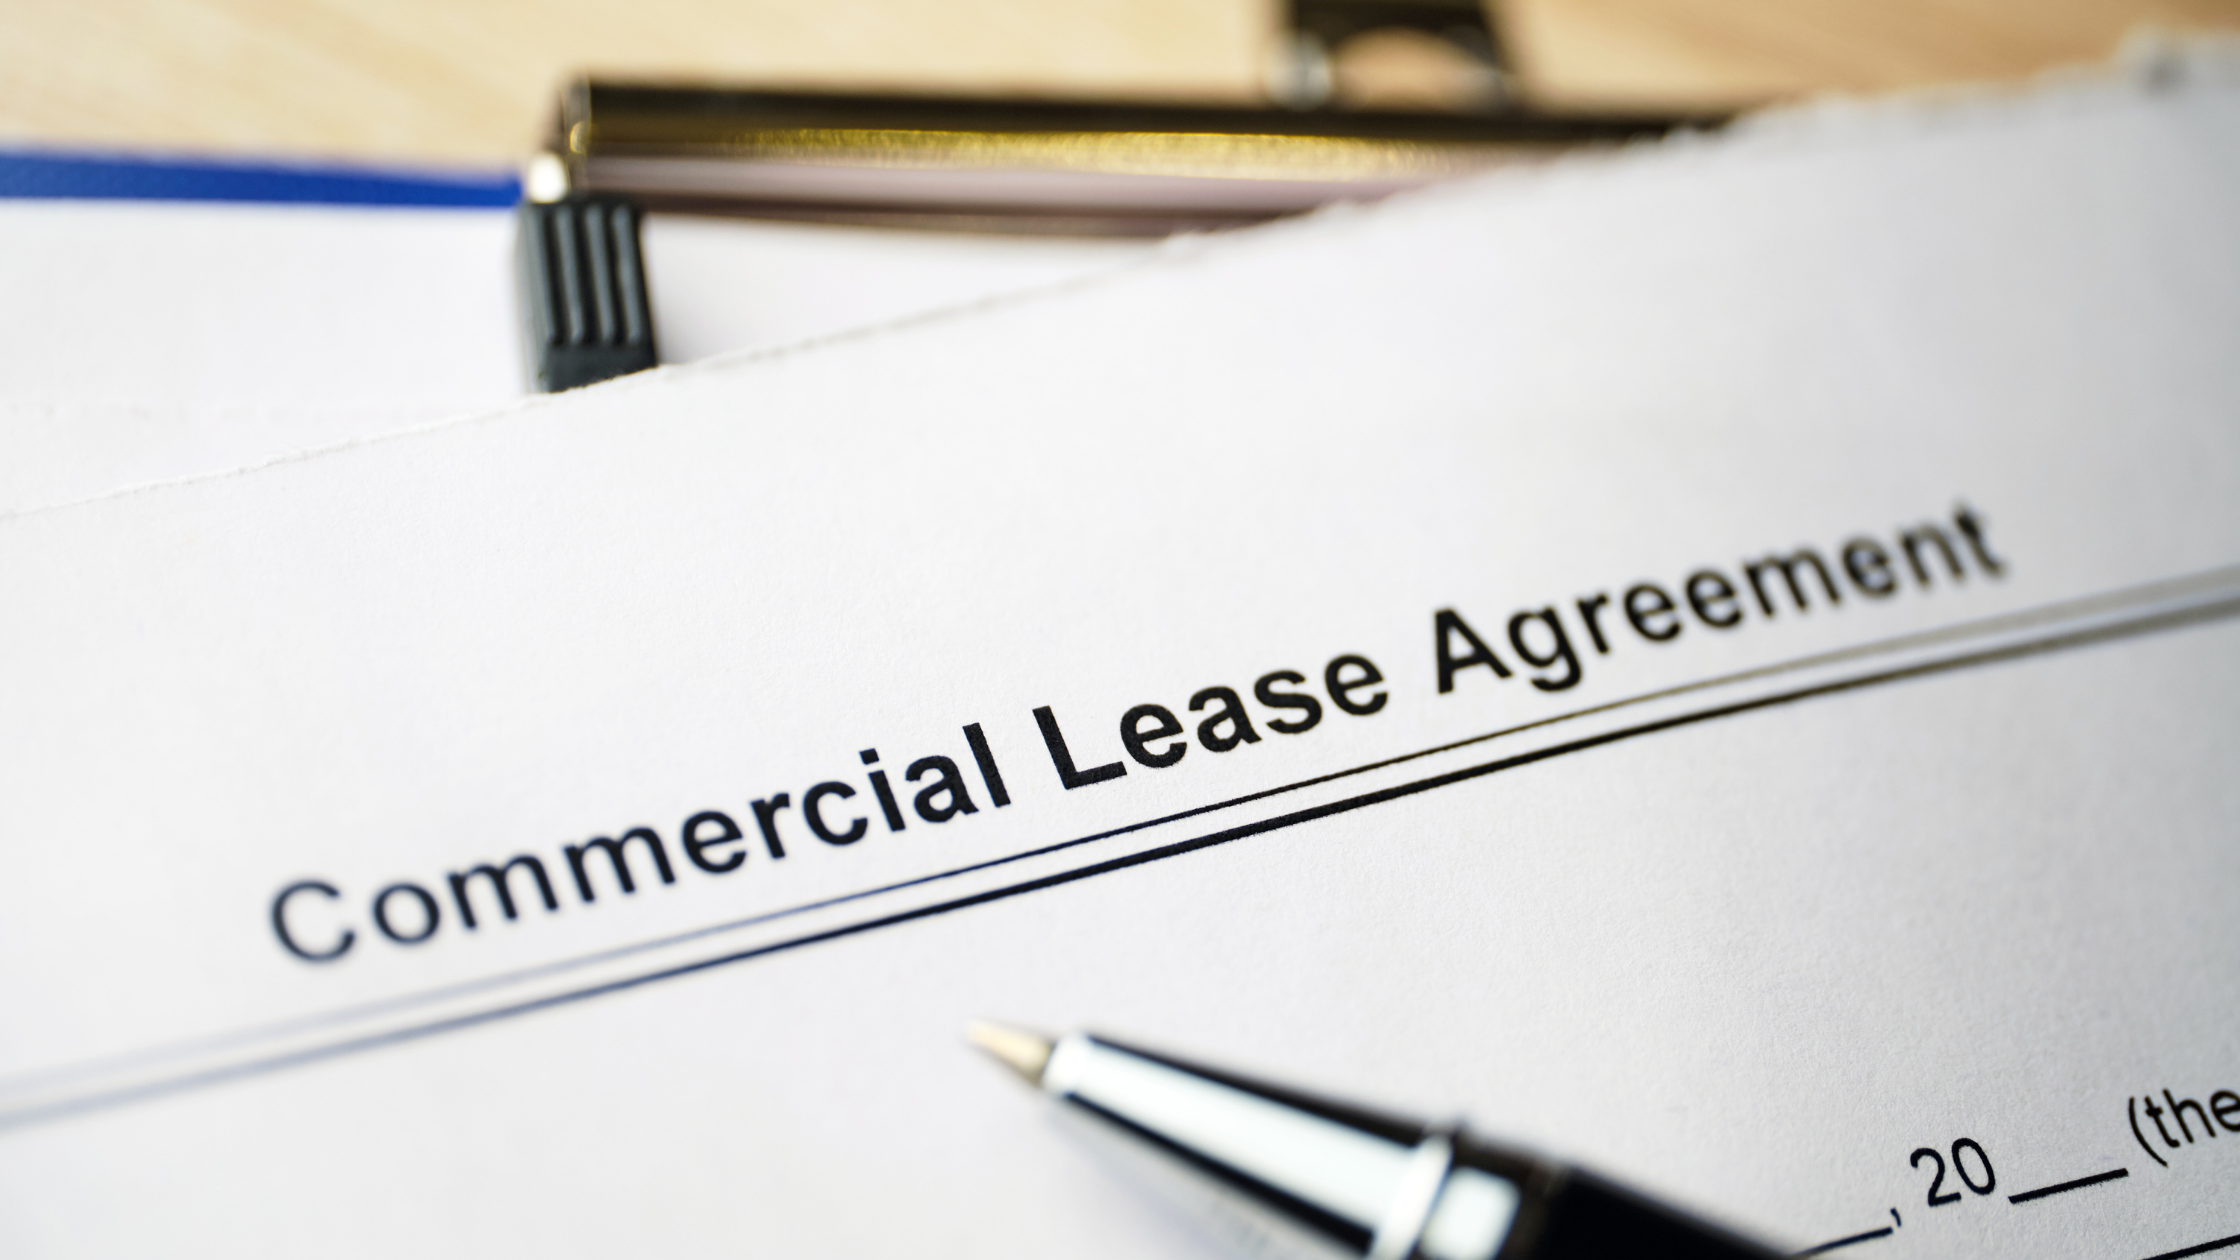 Commercial Leasing Guide